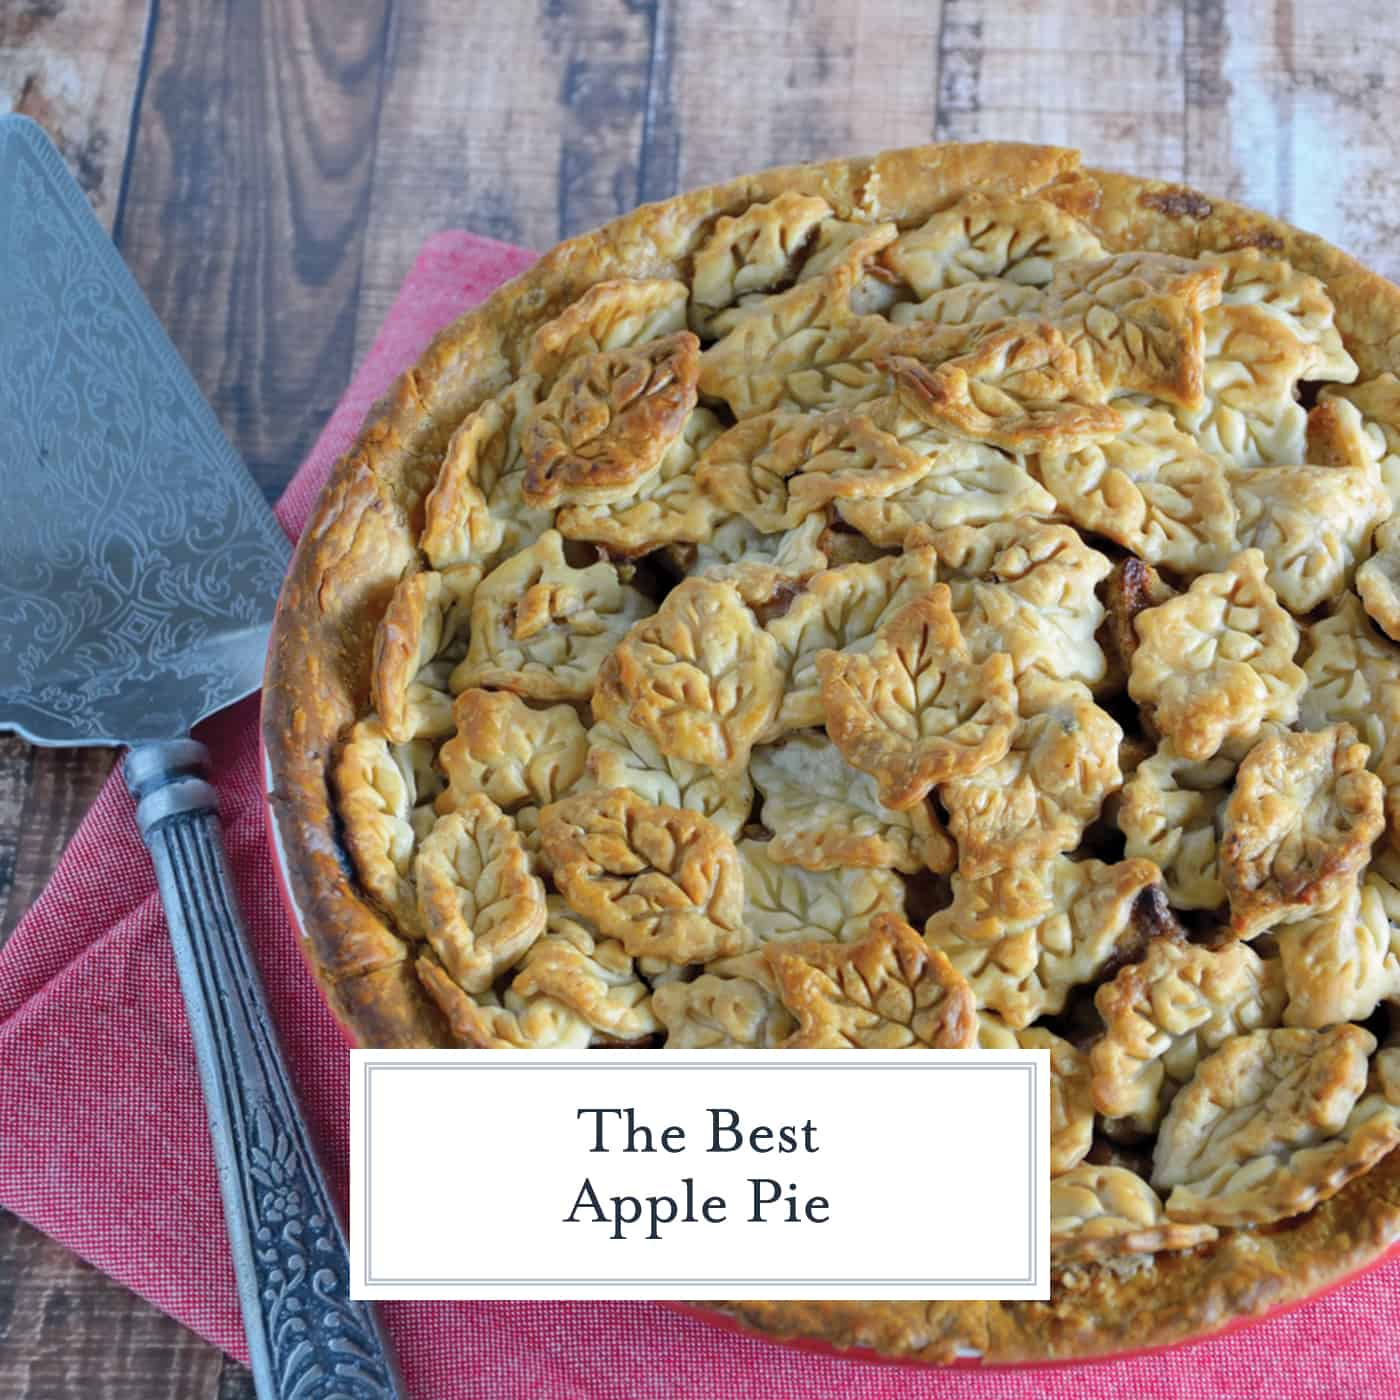 The Best Apple Pie Recipe is an all-American dessert recipe that pairs tart apples with the perfect amount of sugar and spice. #bestapplepie #applepie www.savoryexperiments.com